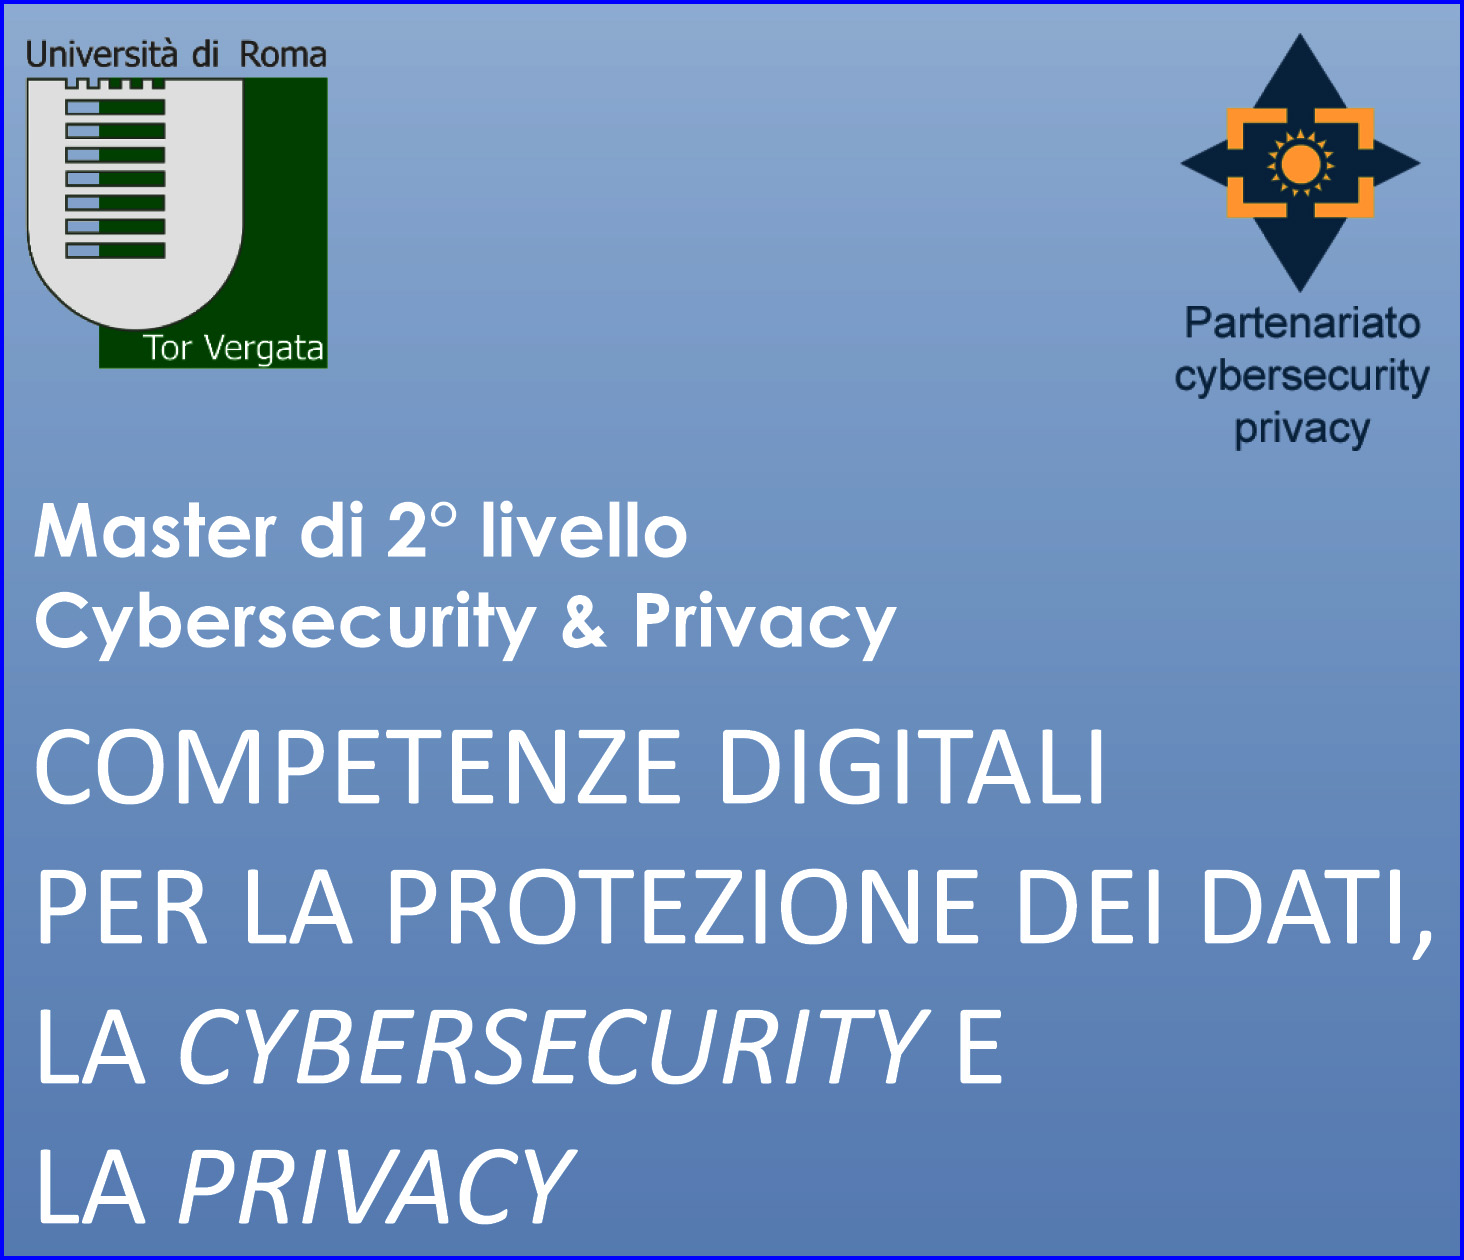 Master di 2° livello in Cybersecurity & Privacy